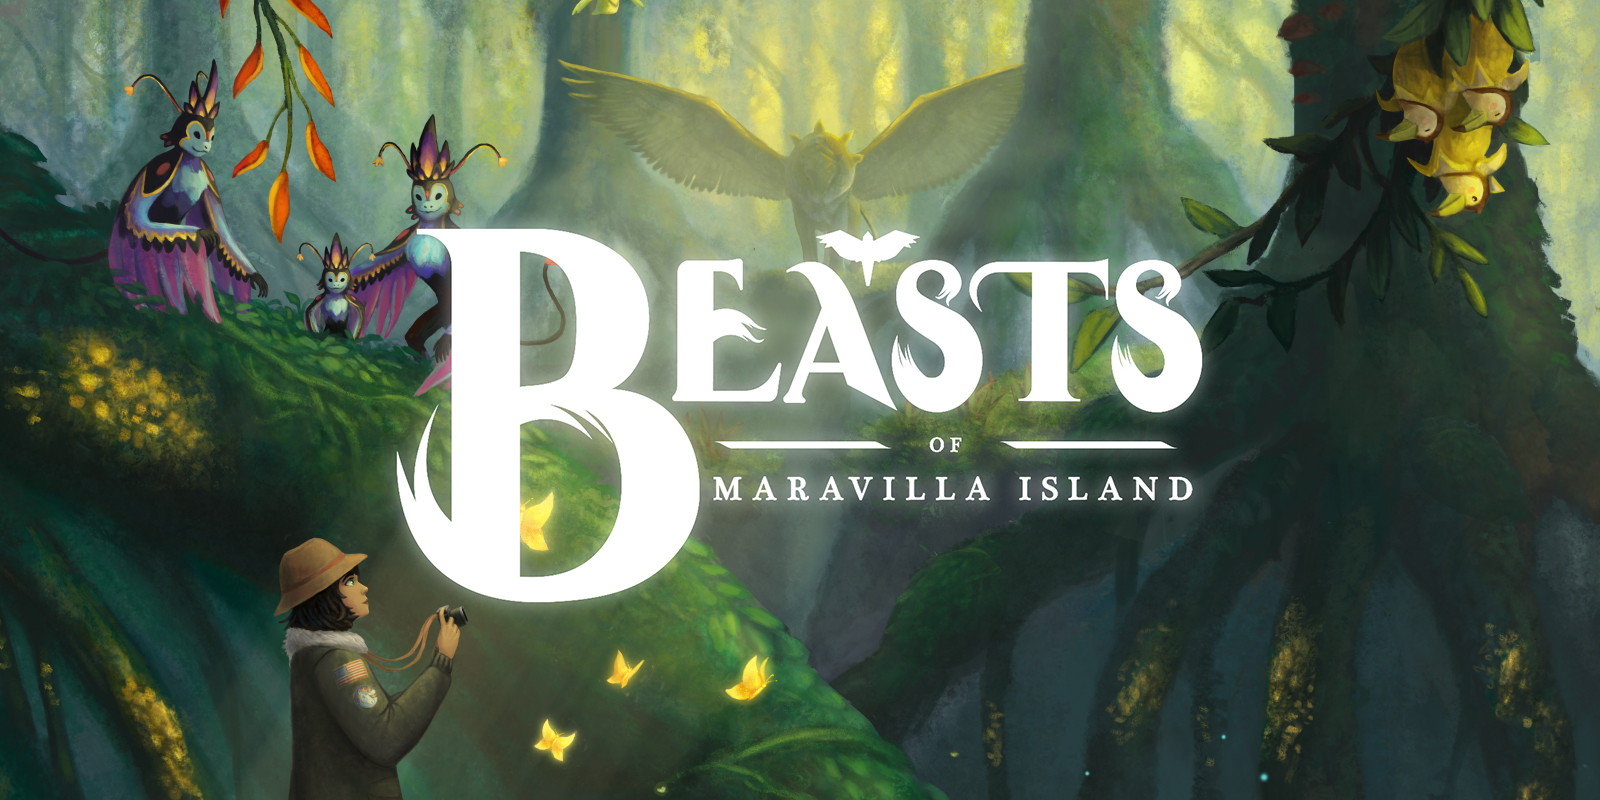 Beasts of Maravilla Island